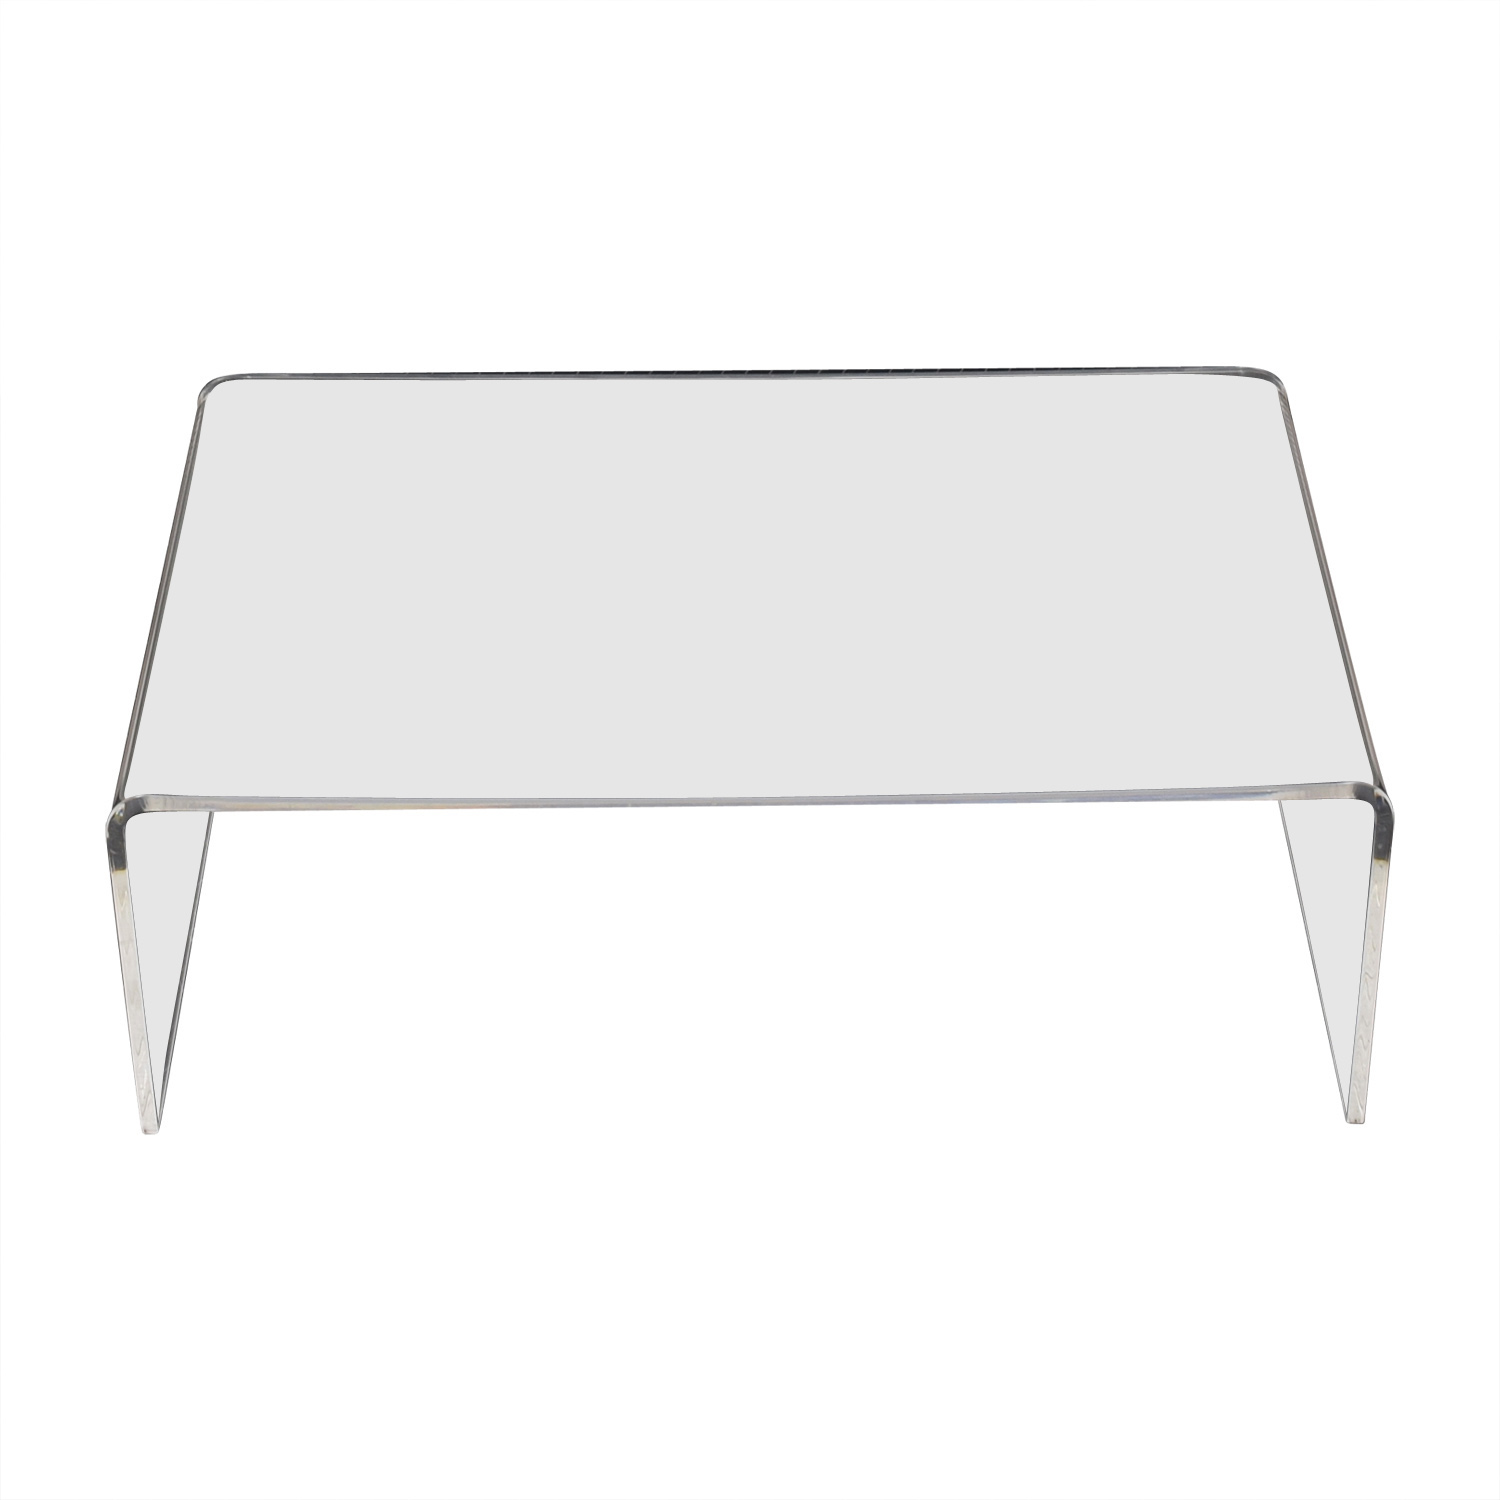 Cb2 Acrylic Ghost Coffee Table Coffee Tables